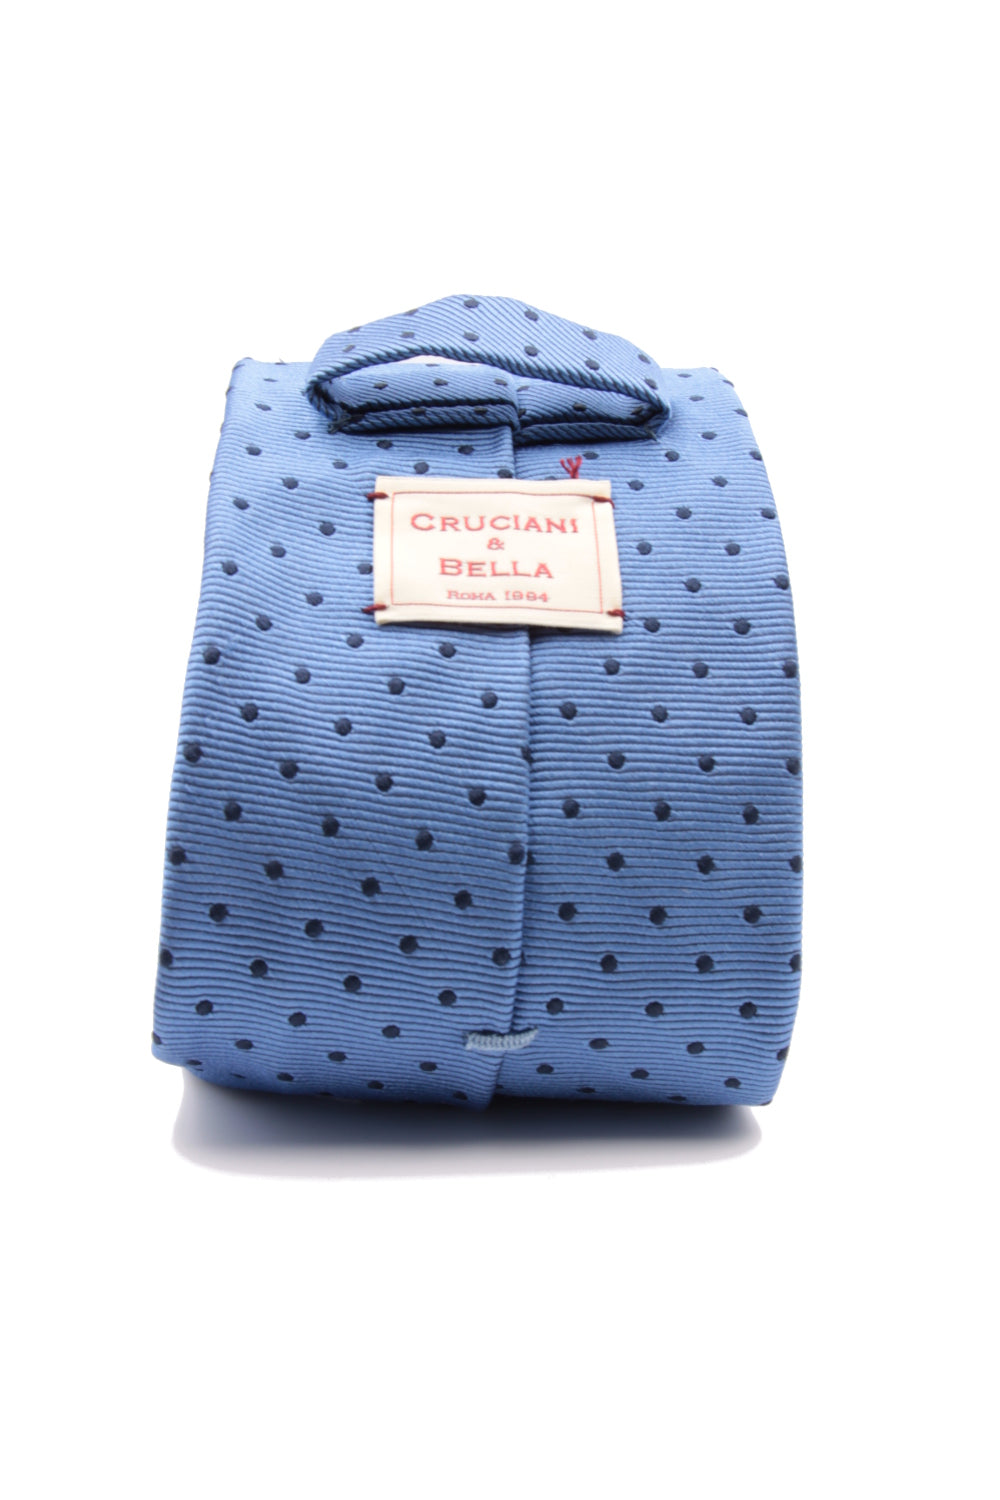 Light blue and navy blue spot tie